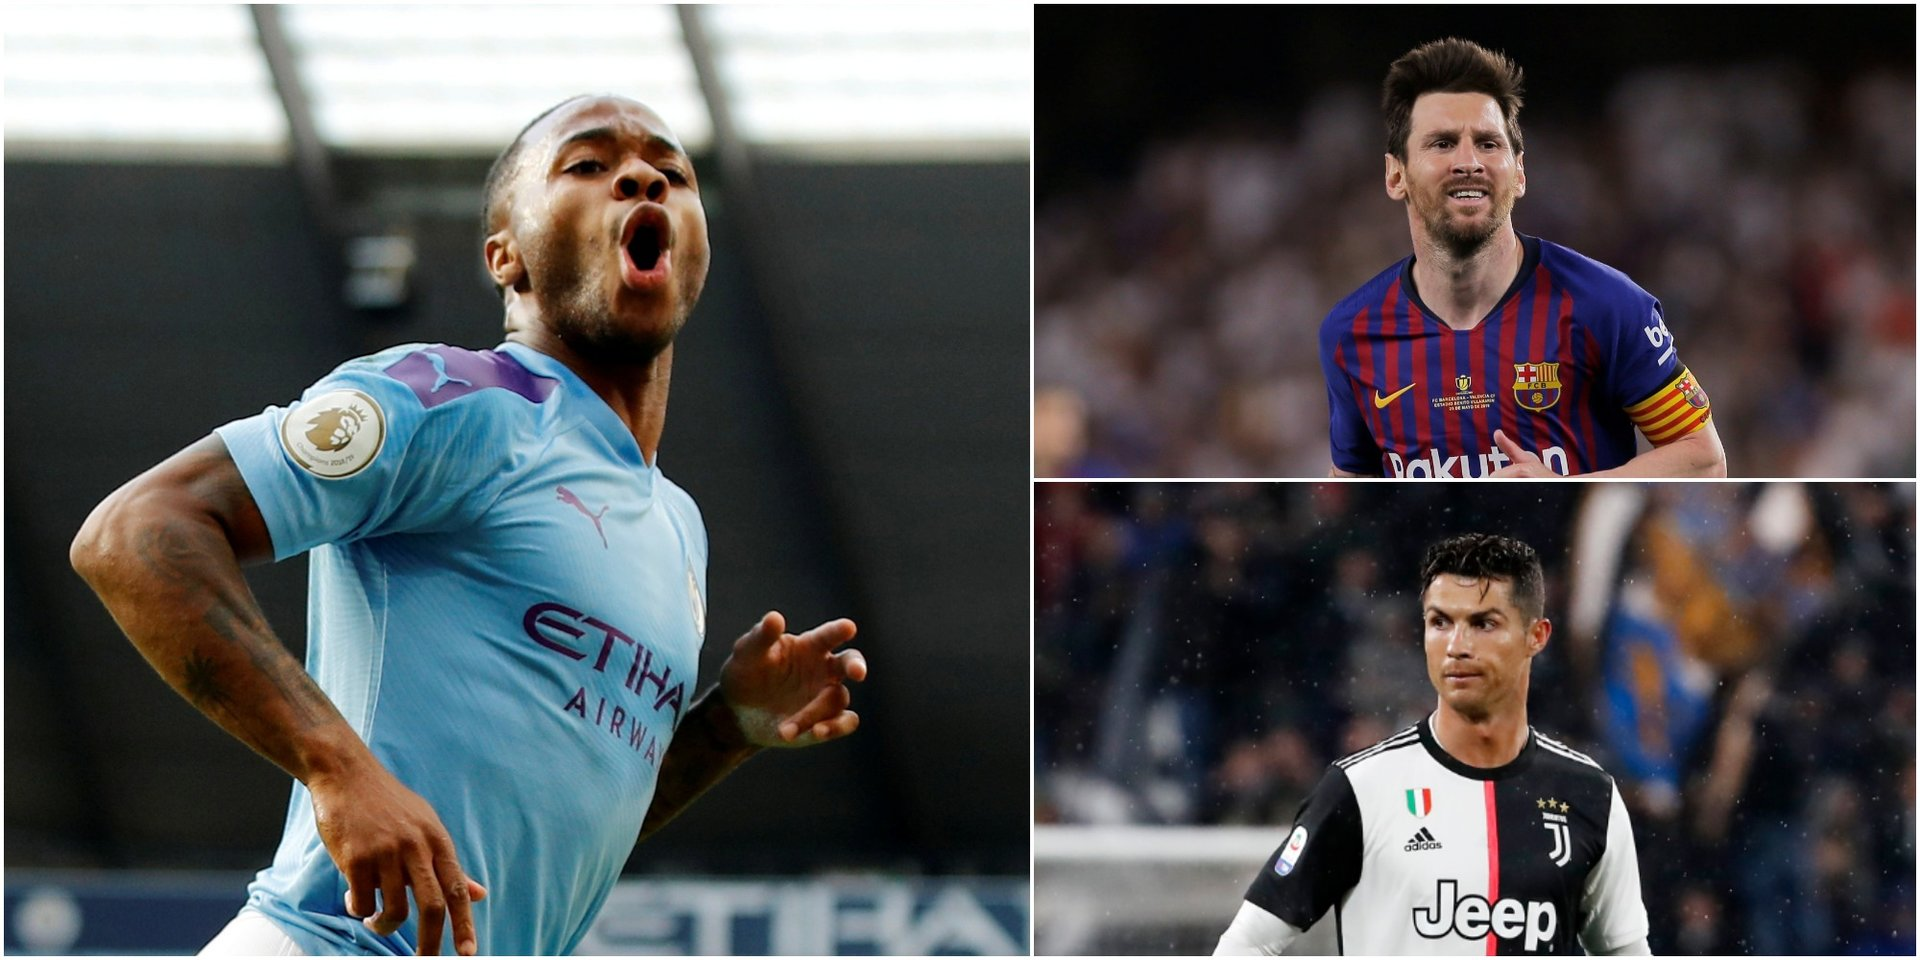 A former Manchester City and England star says Raheem Sterling is just as good as Messi and Ronaldo